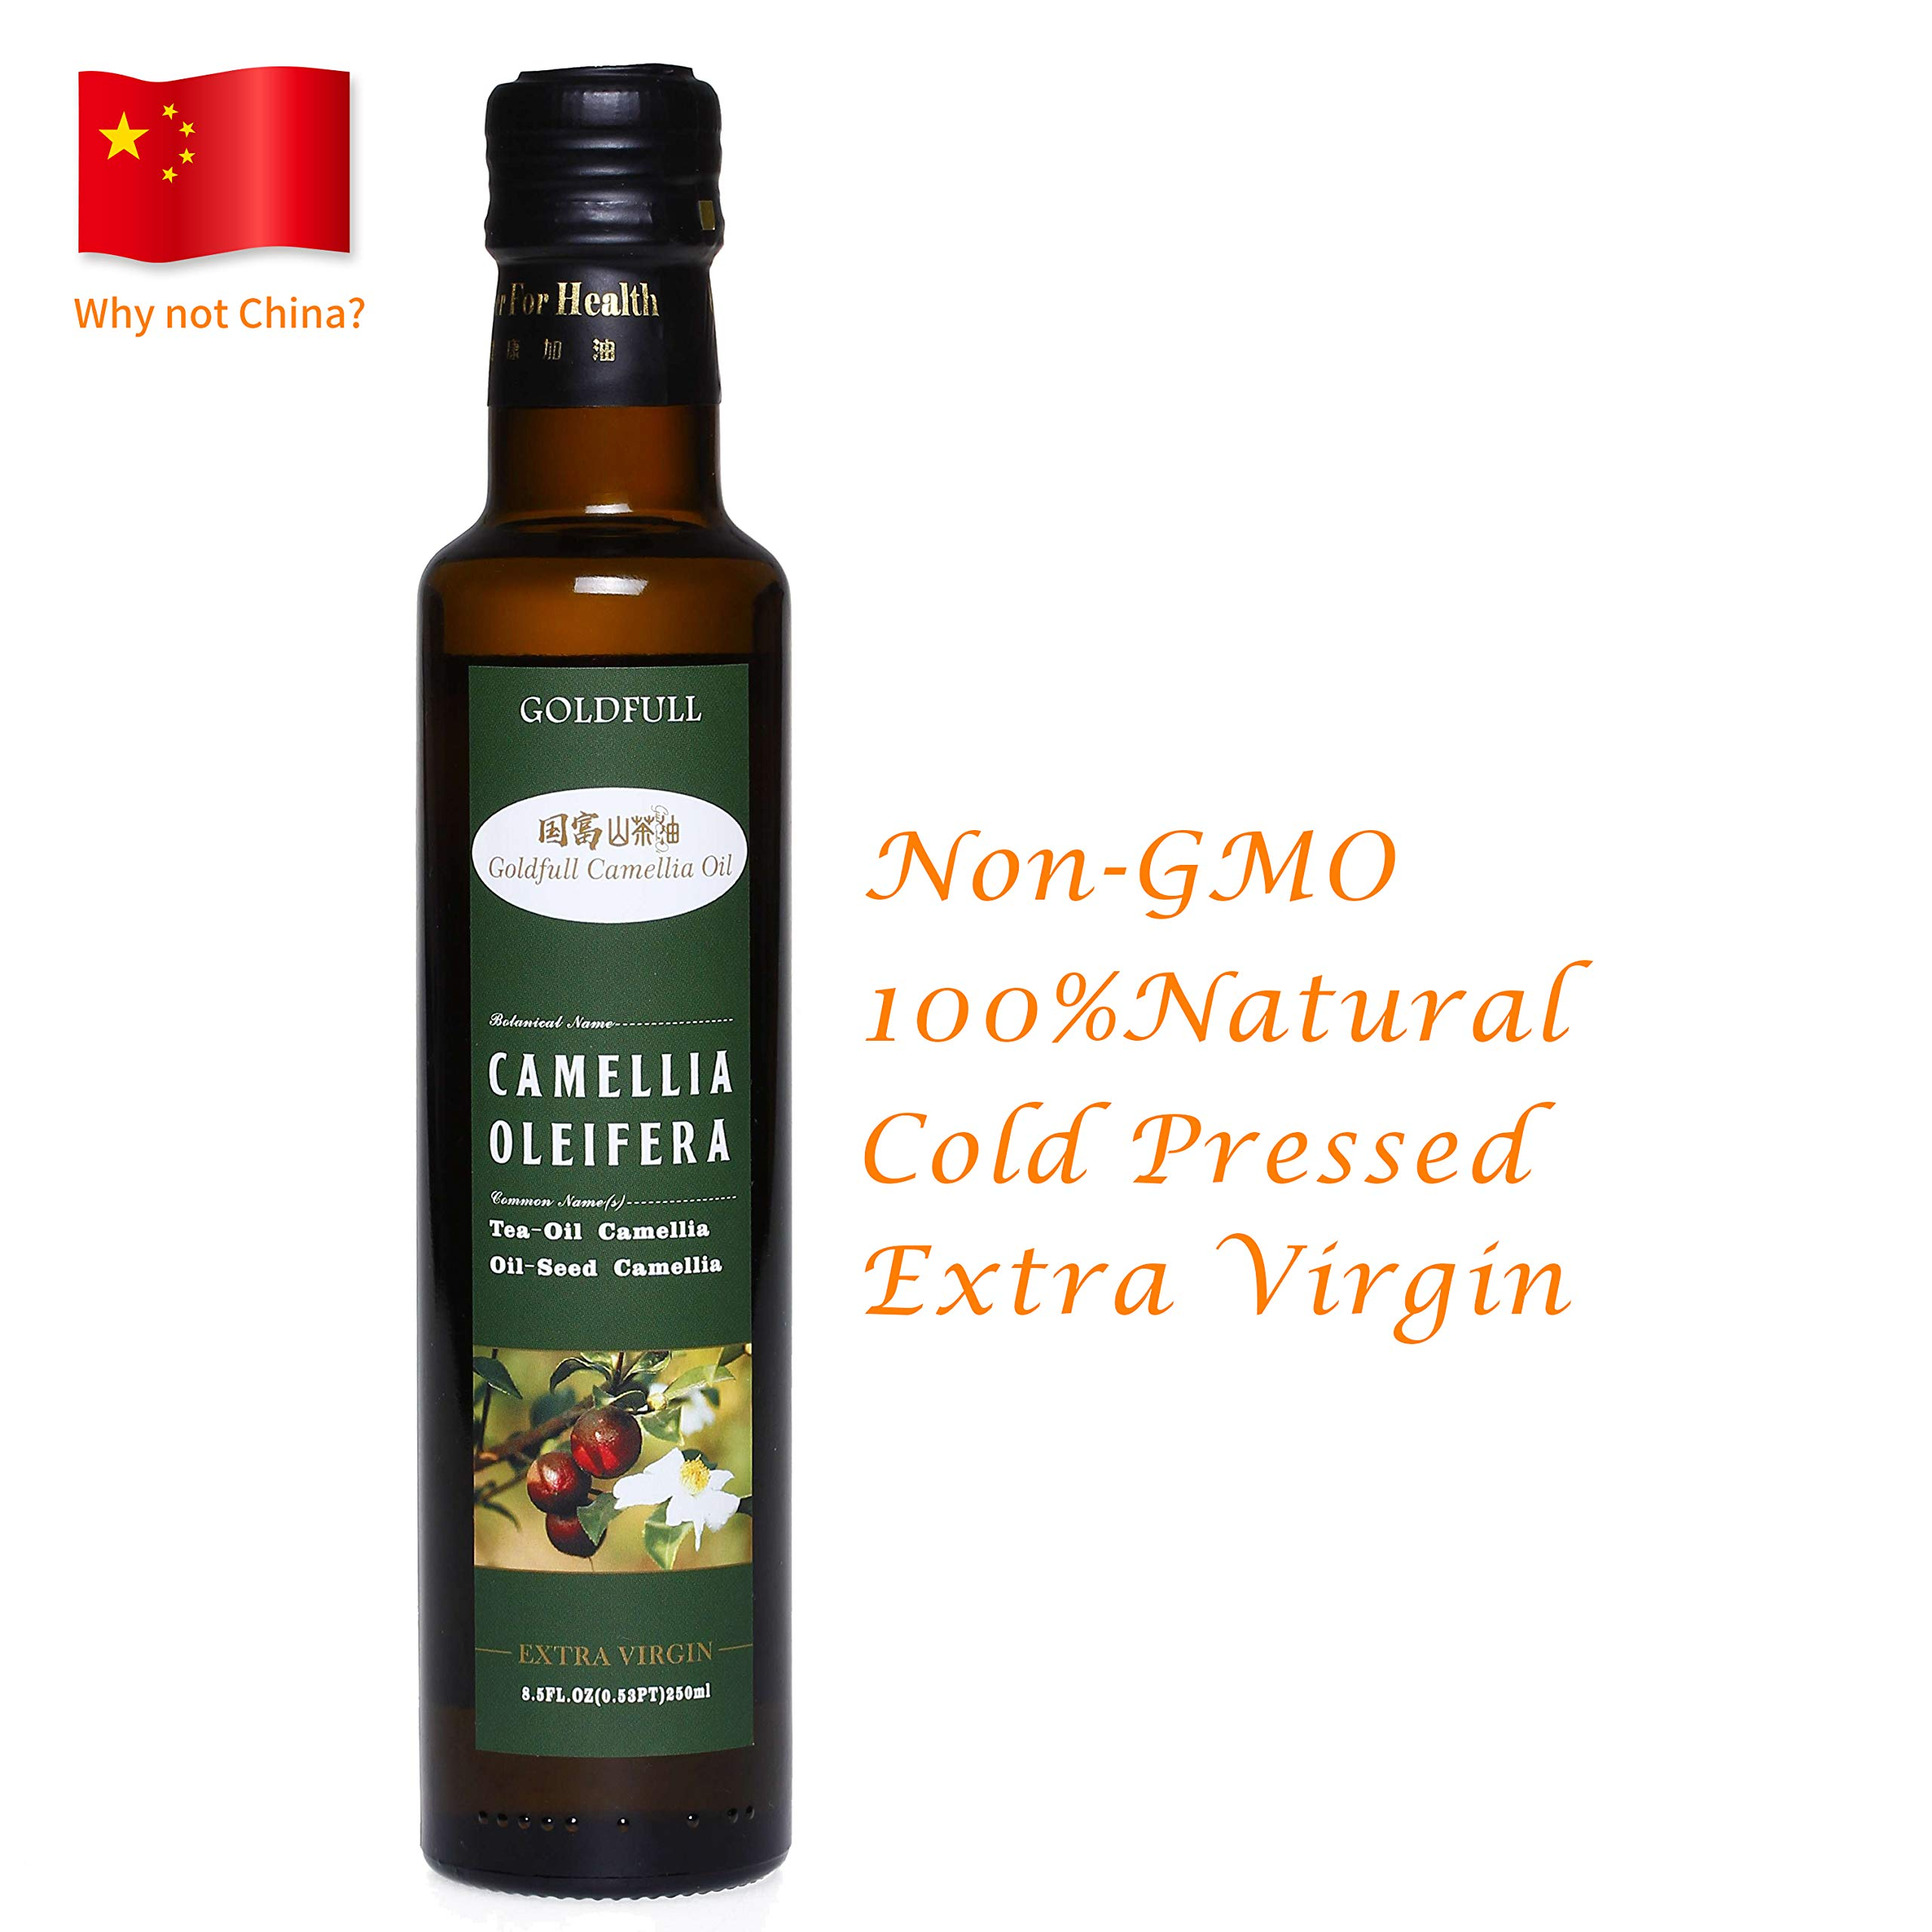 Goldfull Camellia Oil,Tea Seed Oil,Camellia Seed Oil, Cold Pressed Extra Virgin Cooking Oil,Camellia Oleifera Oil, Chinese Olive Oil, Natural Flavor, Current Harvest,250ml by Goldfull Camellia Oil